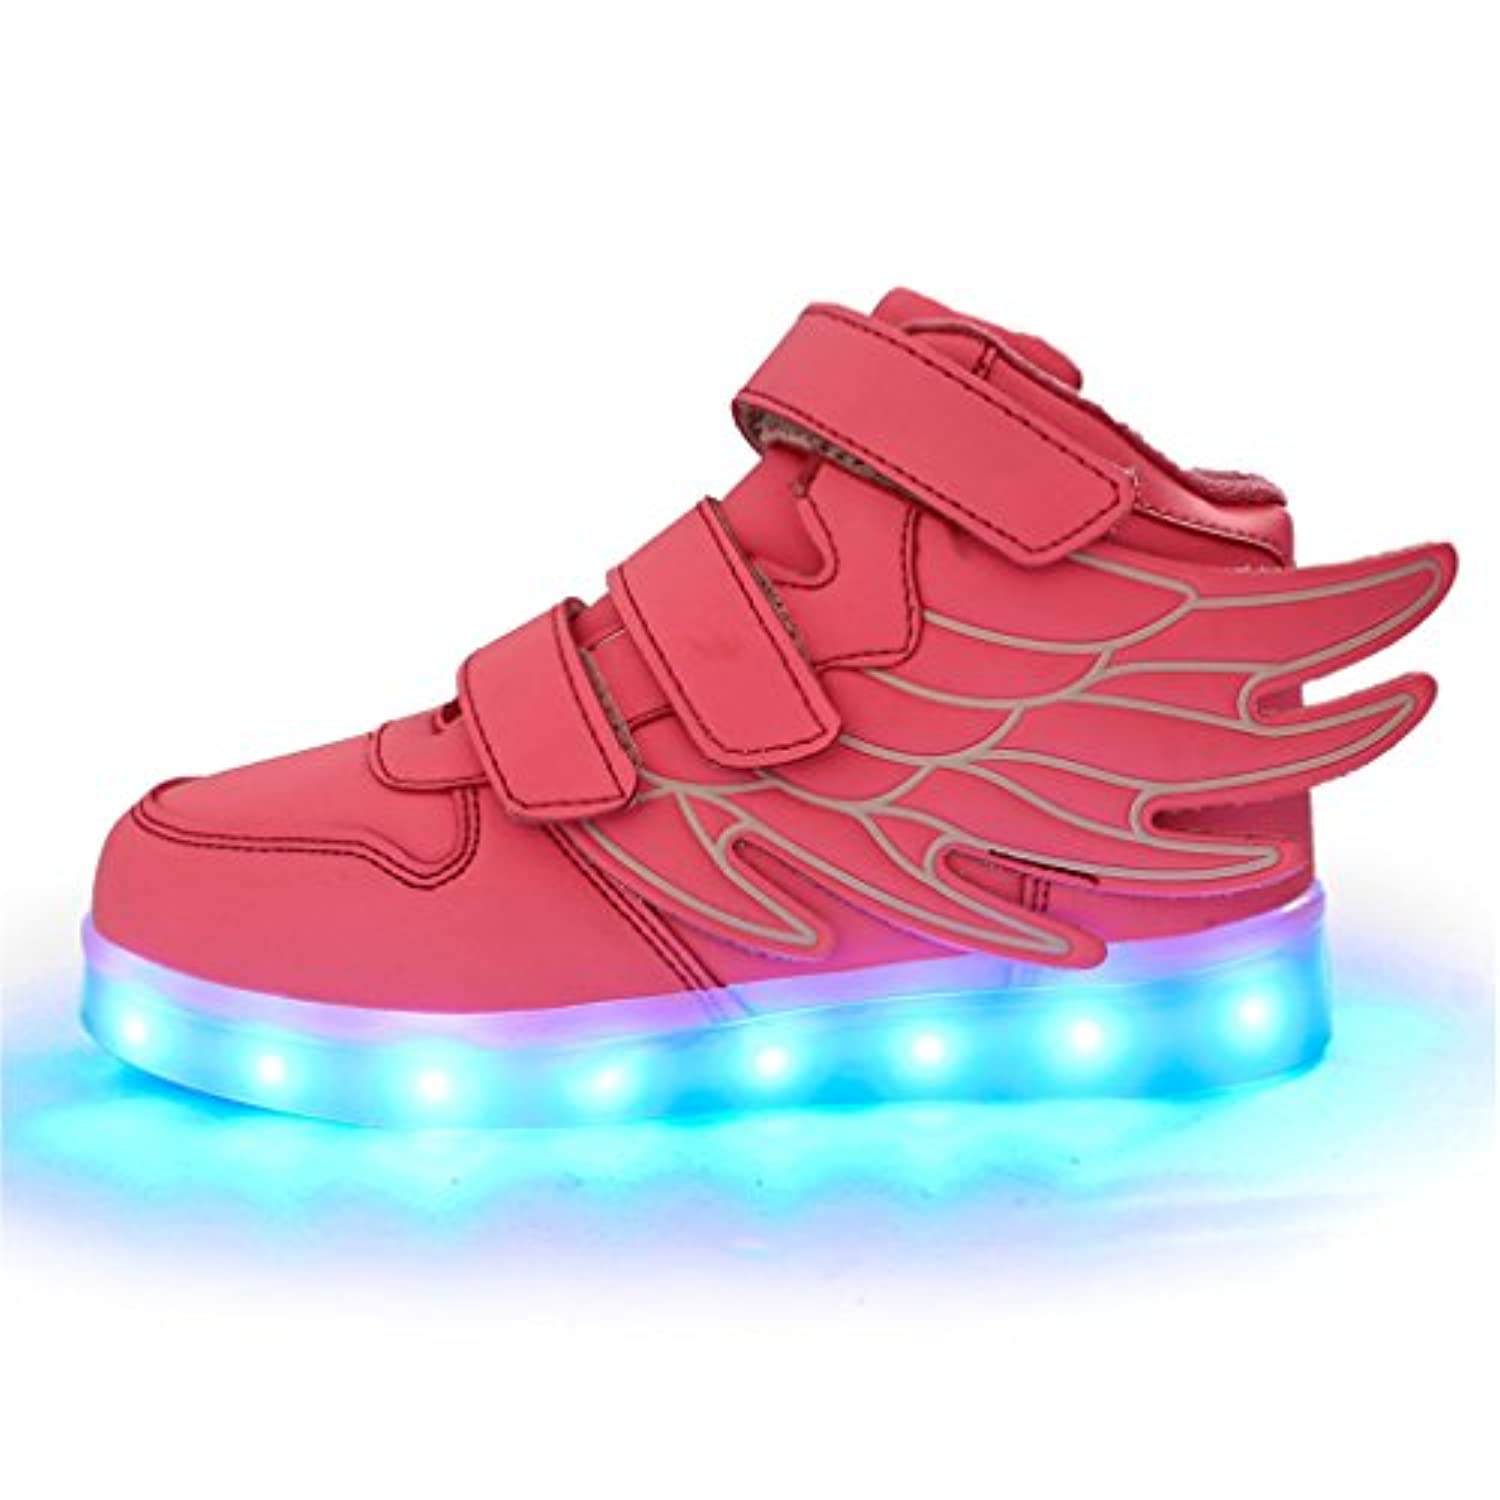 SAGUARO Little Boys Girls LED Light Up Glow Shoes USB Charging Flashing Running Sneakers with Wings Pink